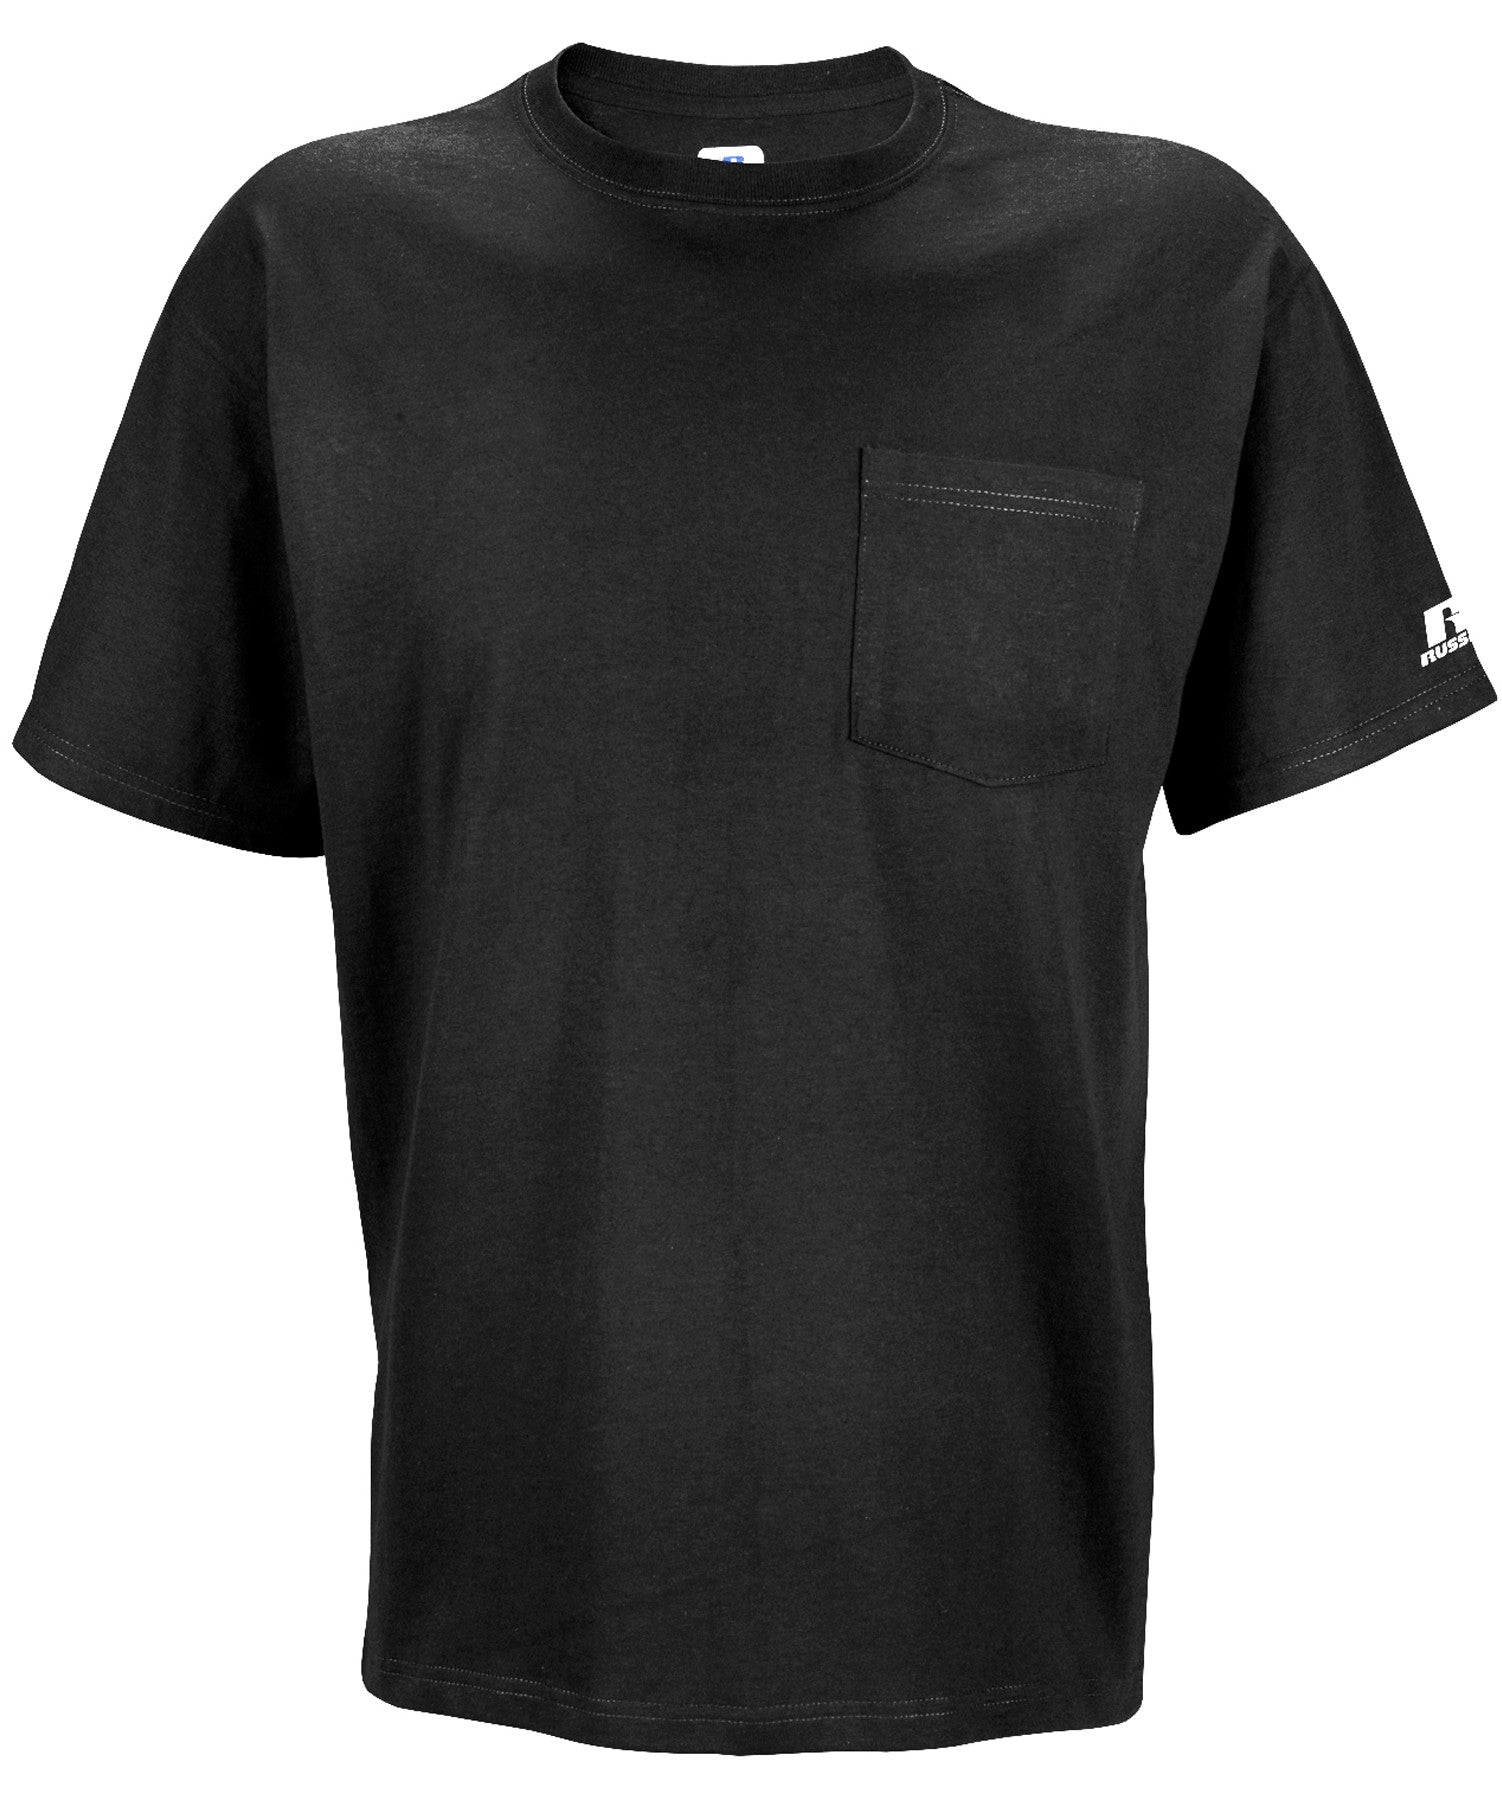 Russell athletic men 39 s athletic pocket tee for Men pocket t shirts